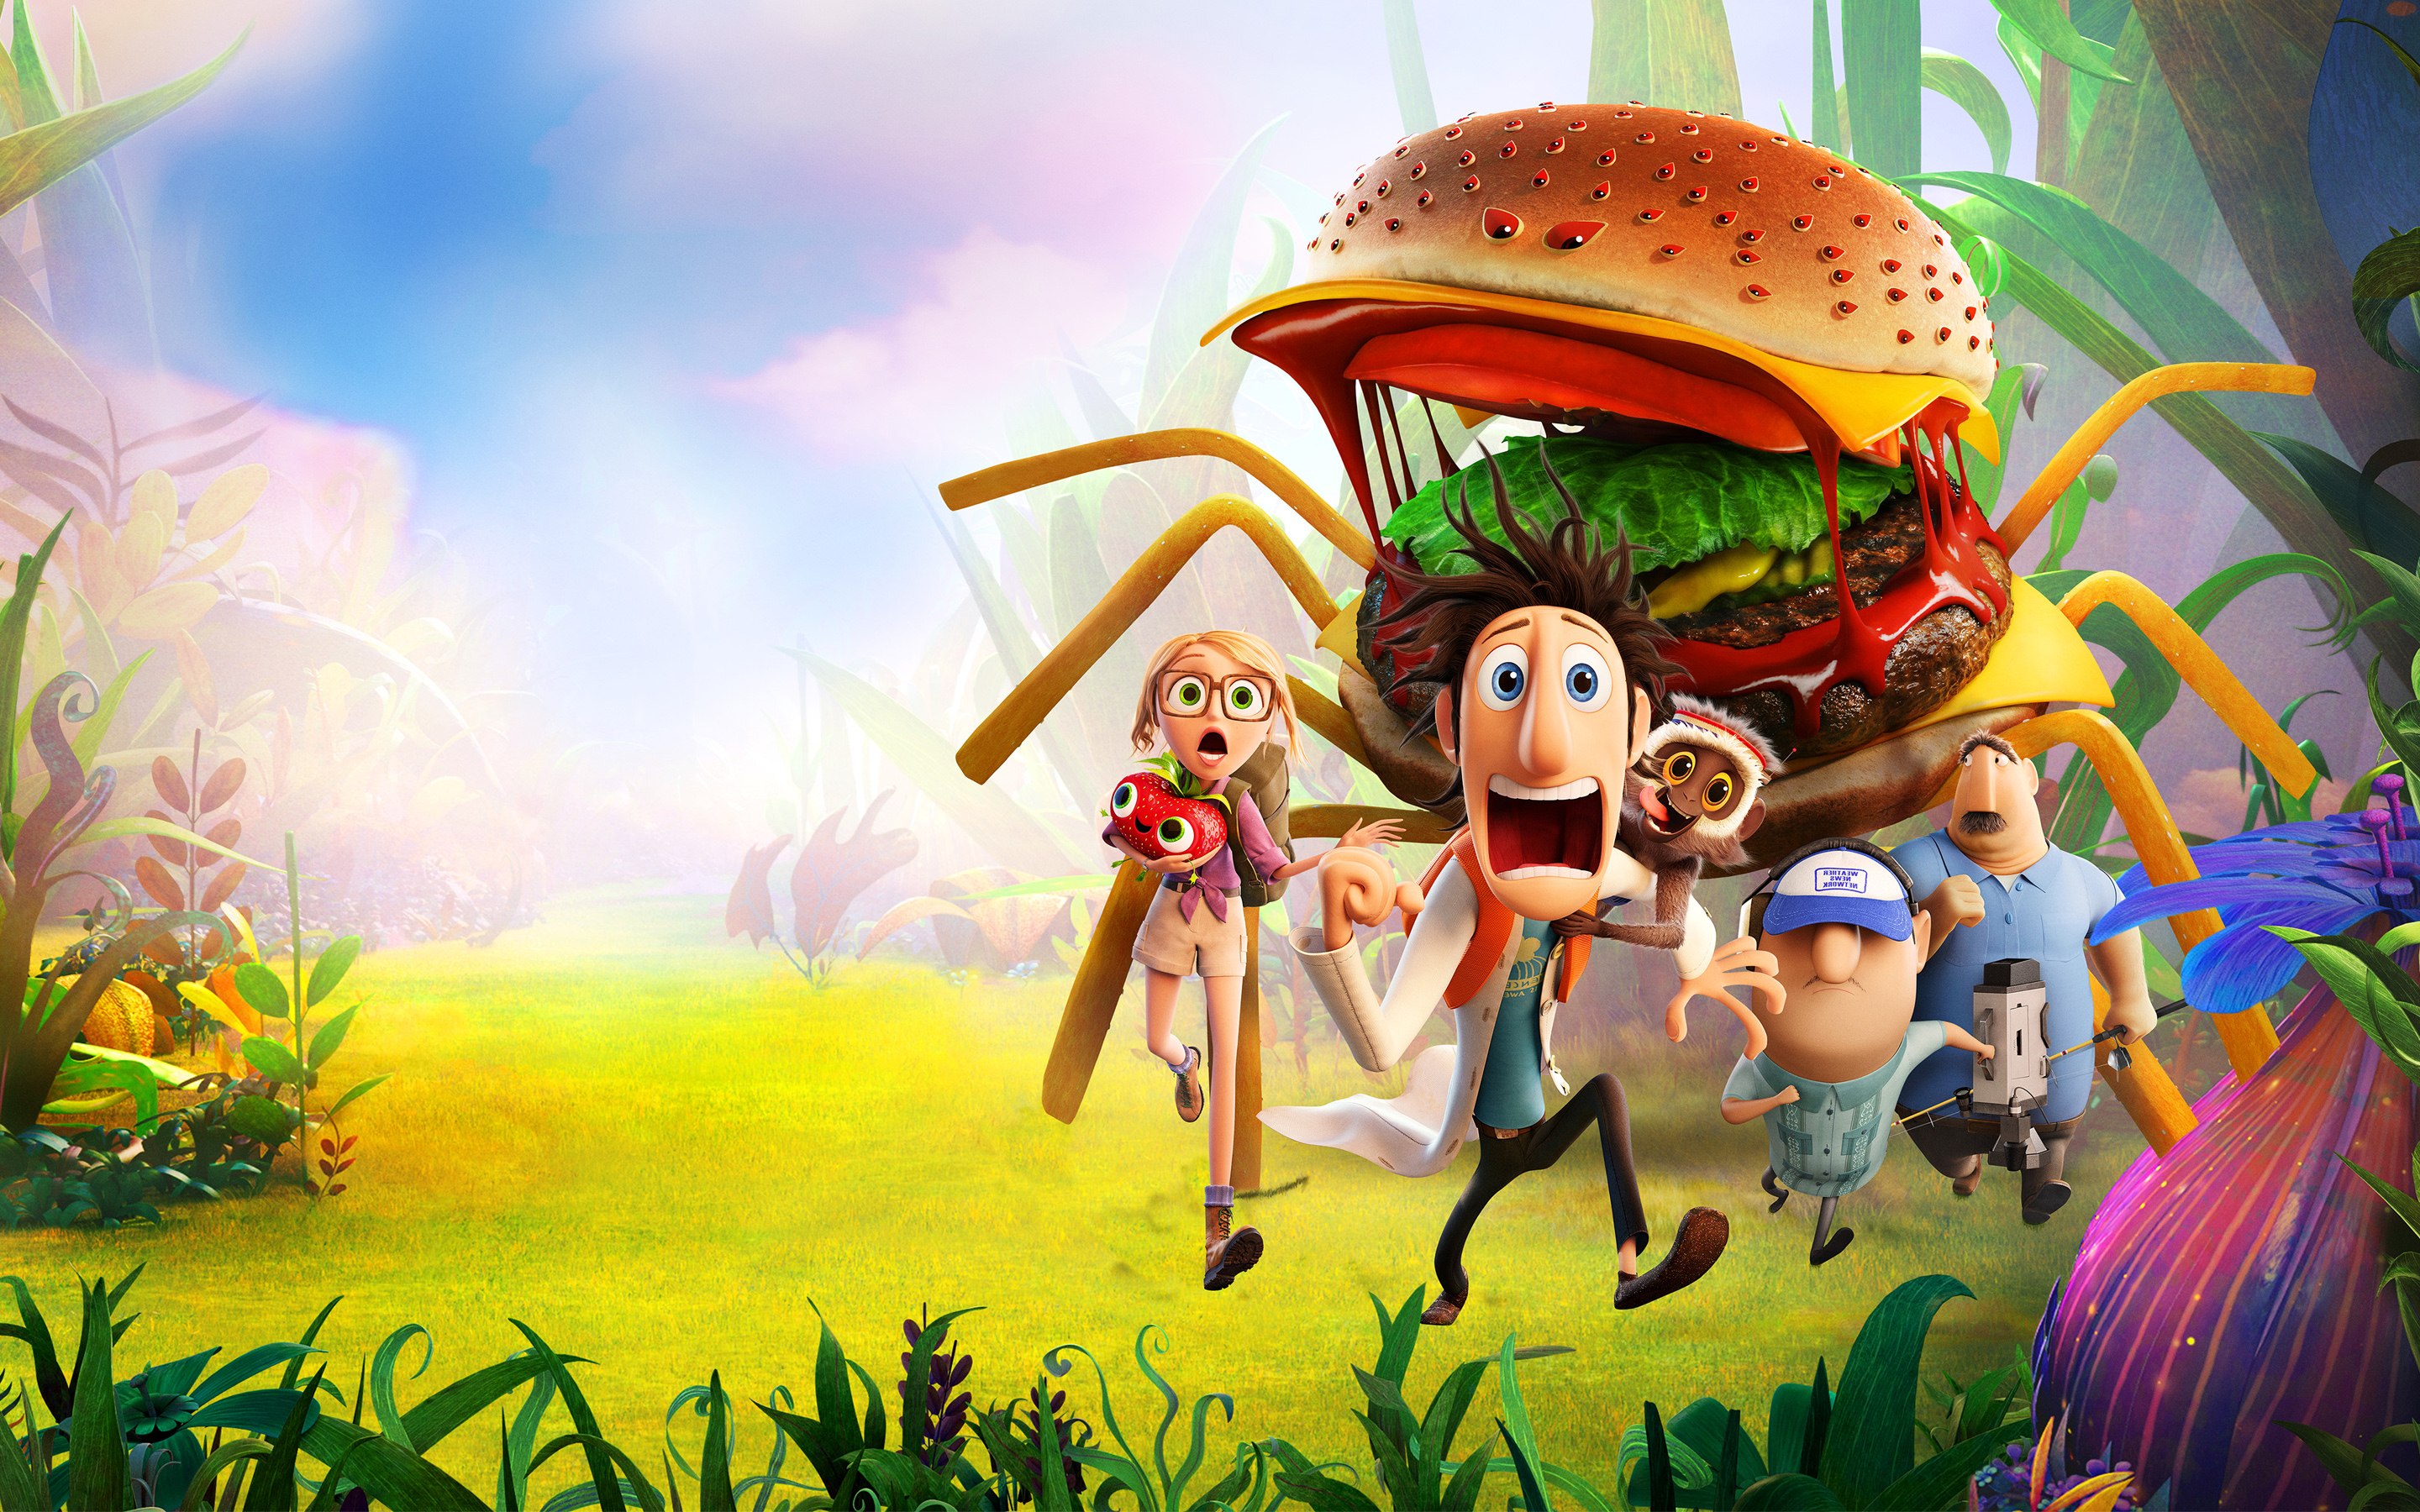 2013 Movie Cloudy with a Chance of Meatballs 2 2220.81 Kb